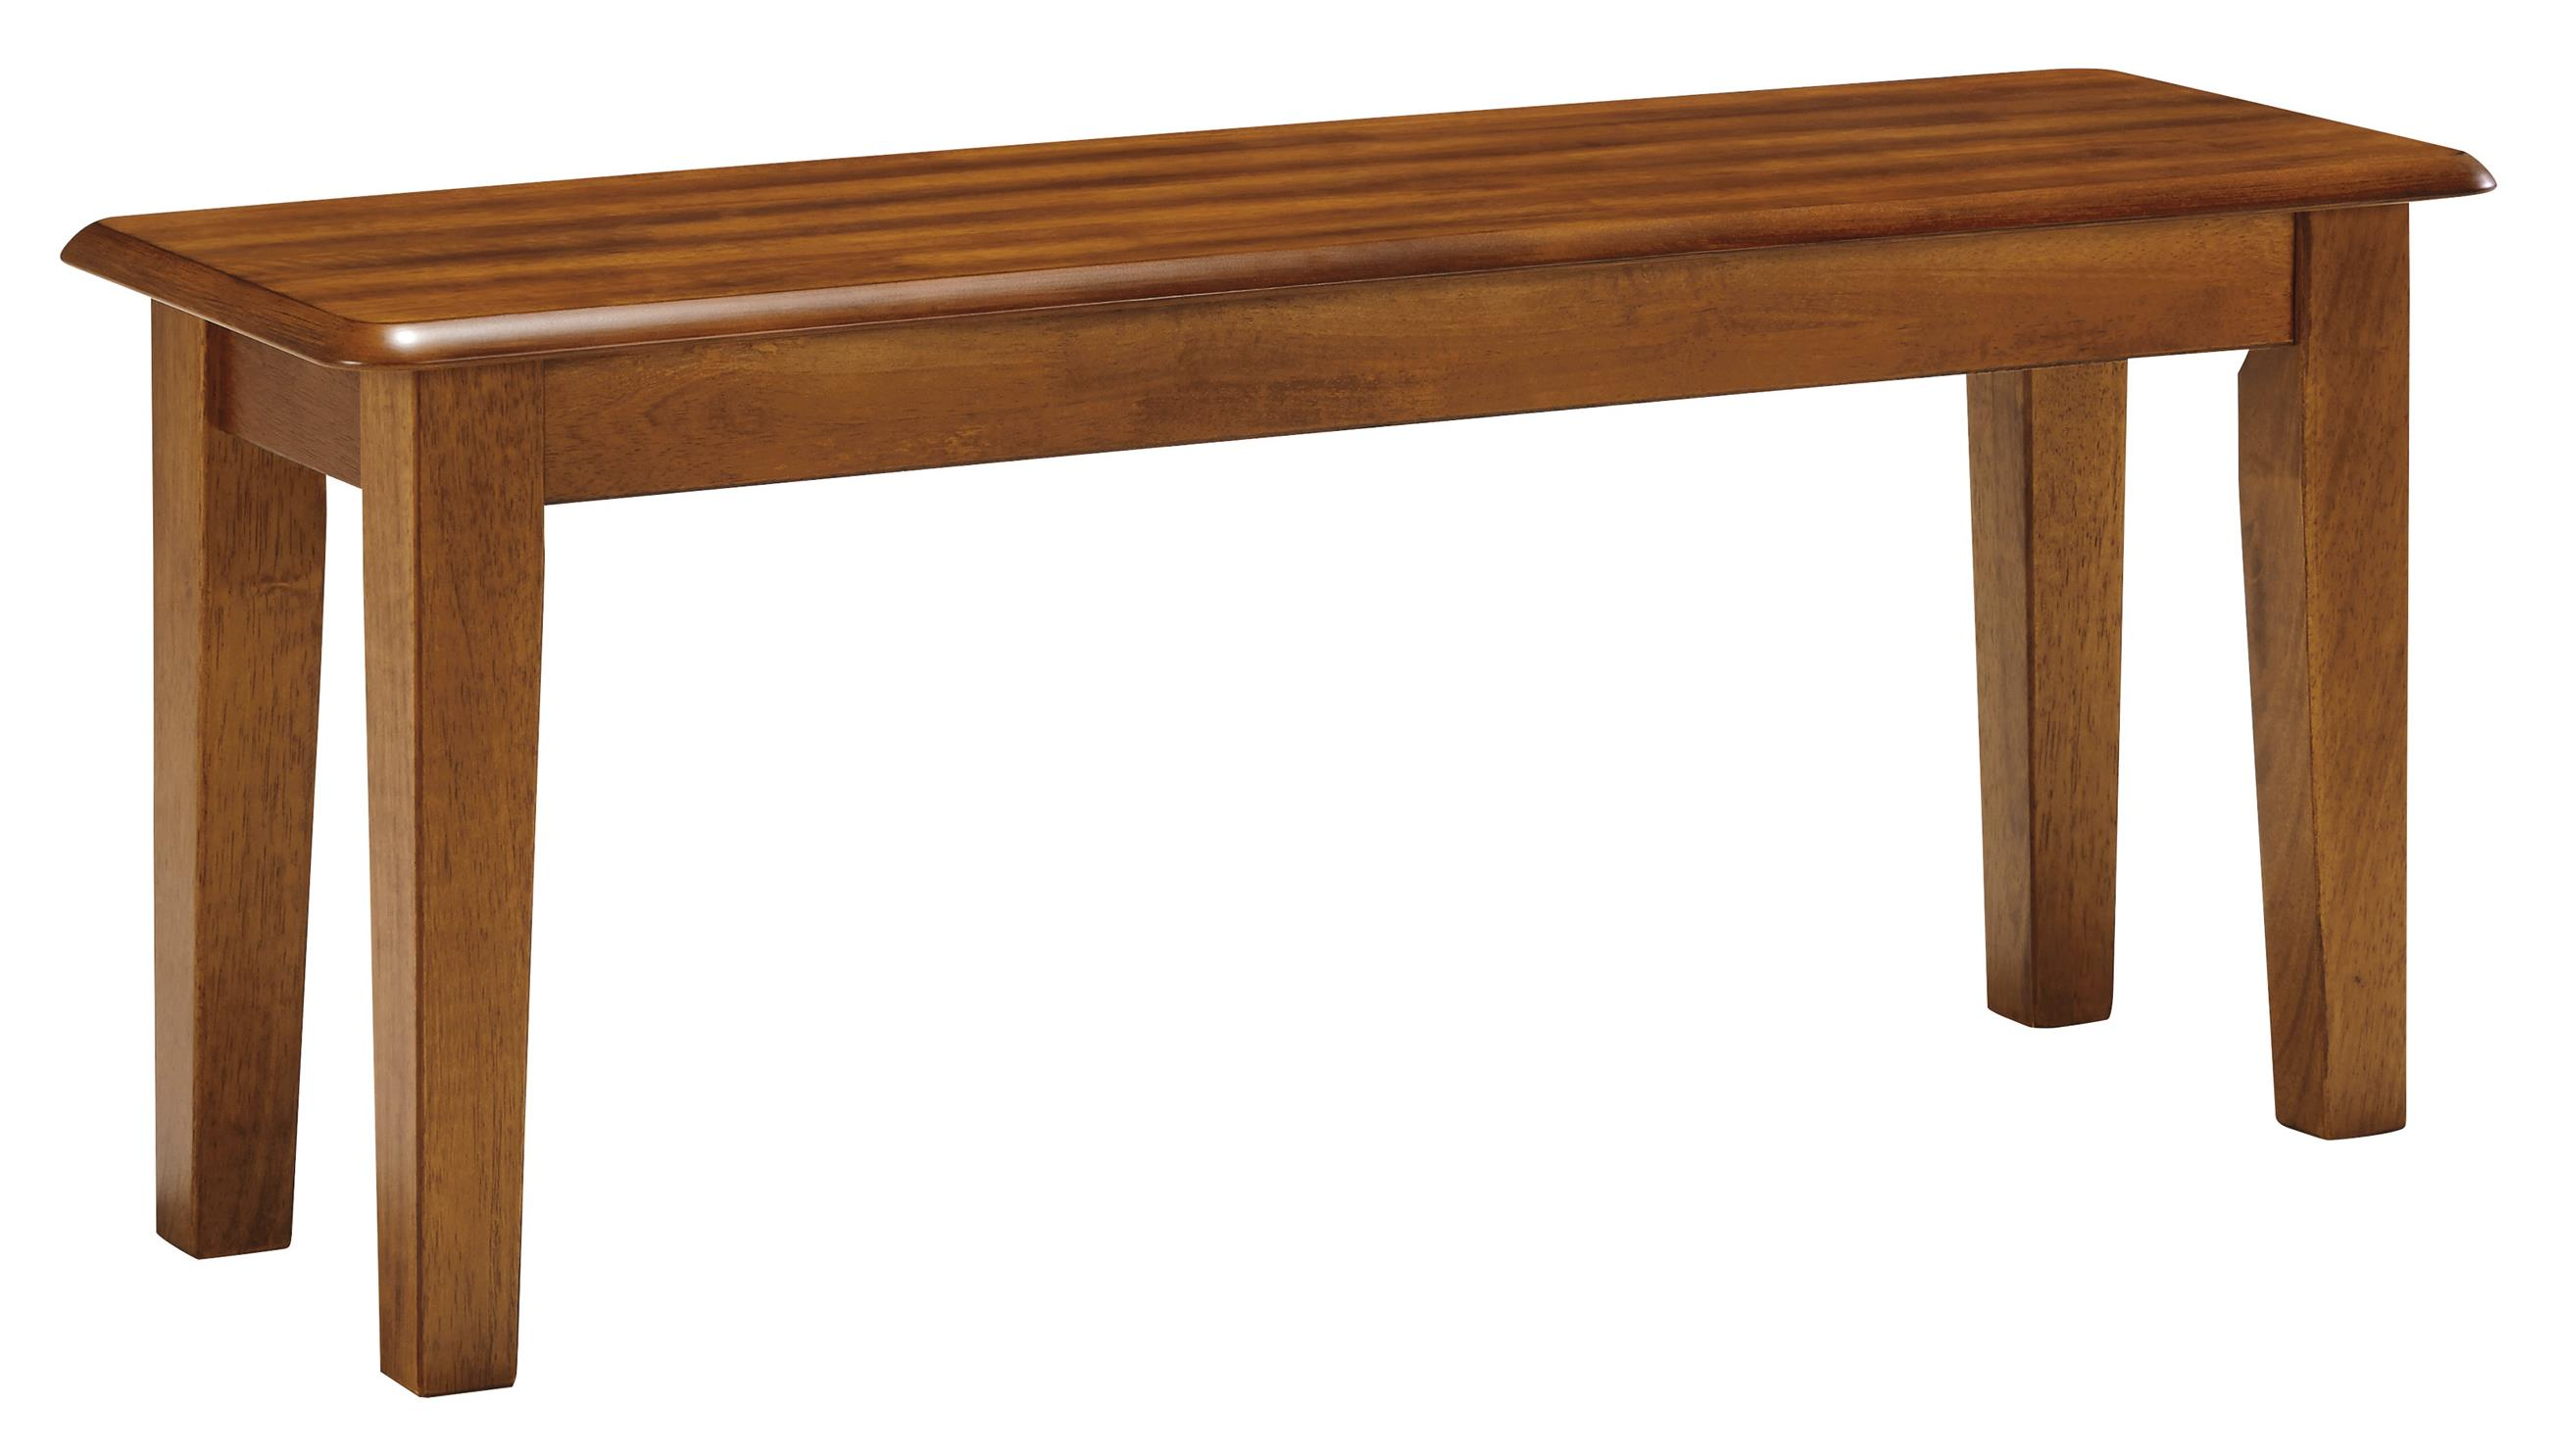 Ashley Furniture Berringer Bench - Item Number: d19900